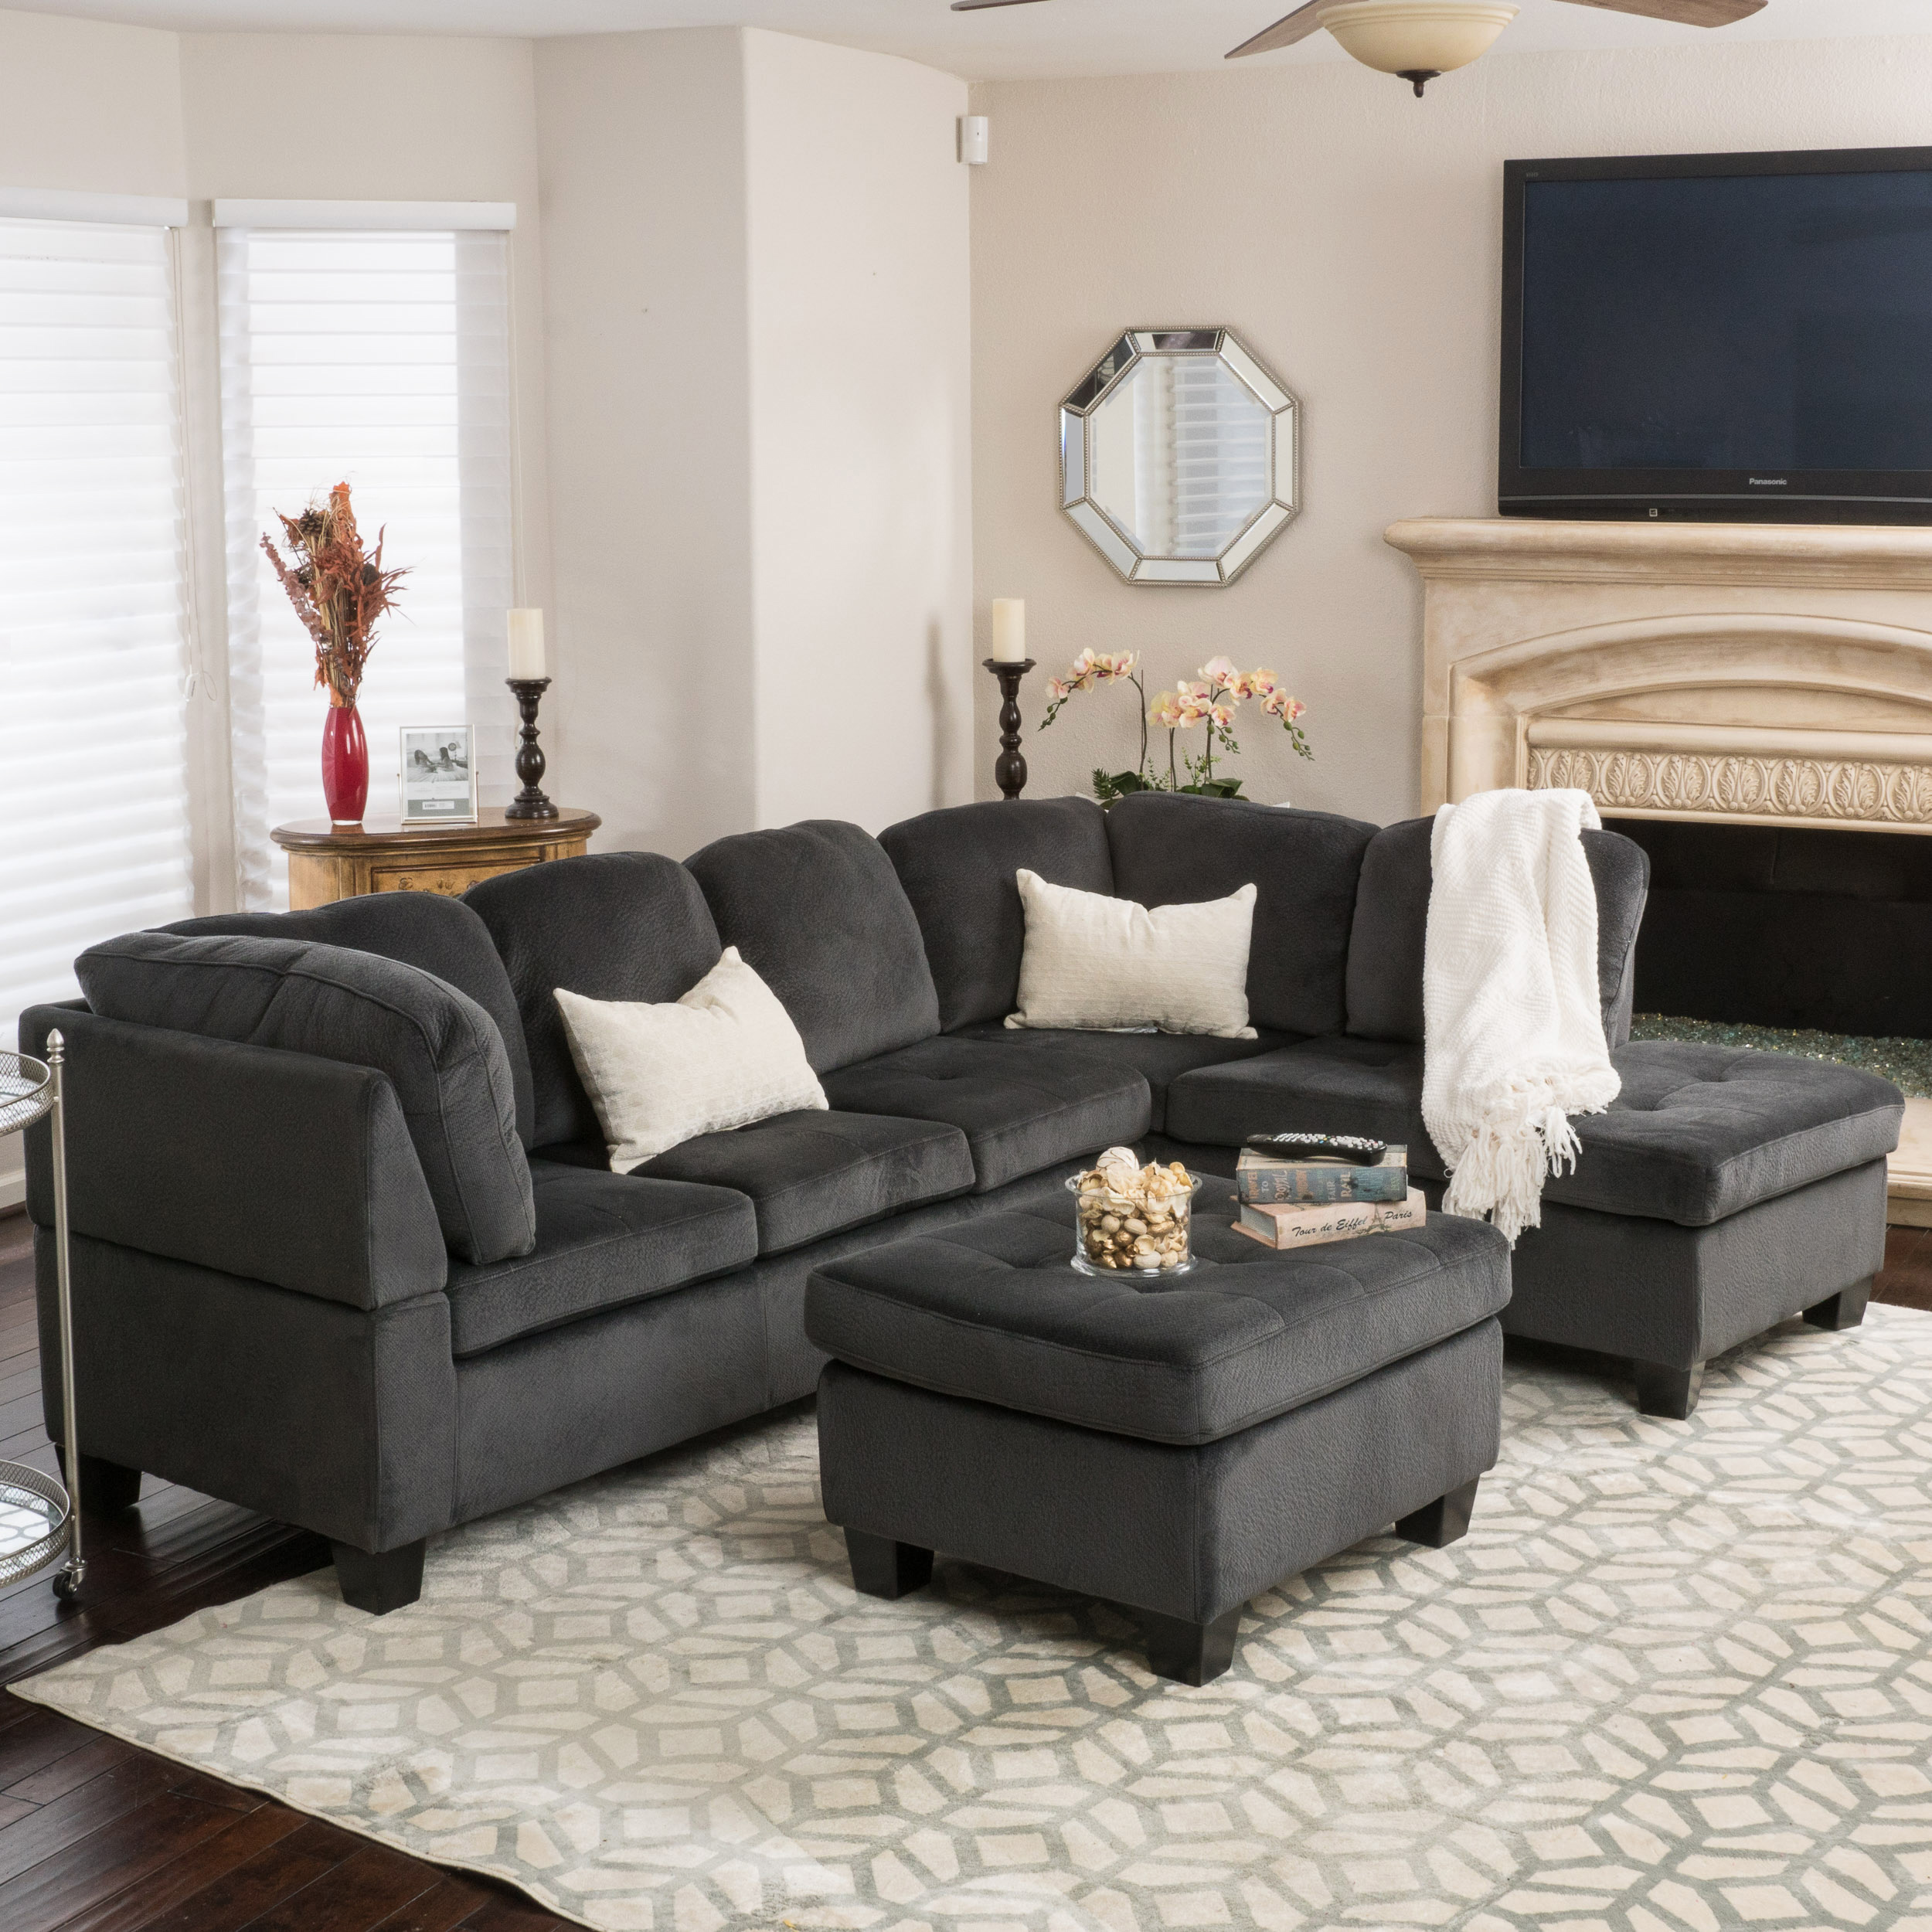 3 Piece Fabric Sectional Sofa Set